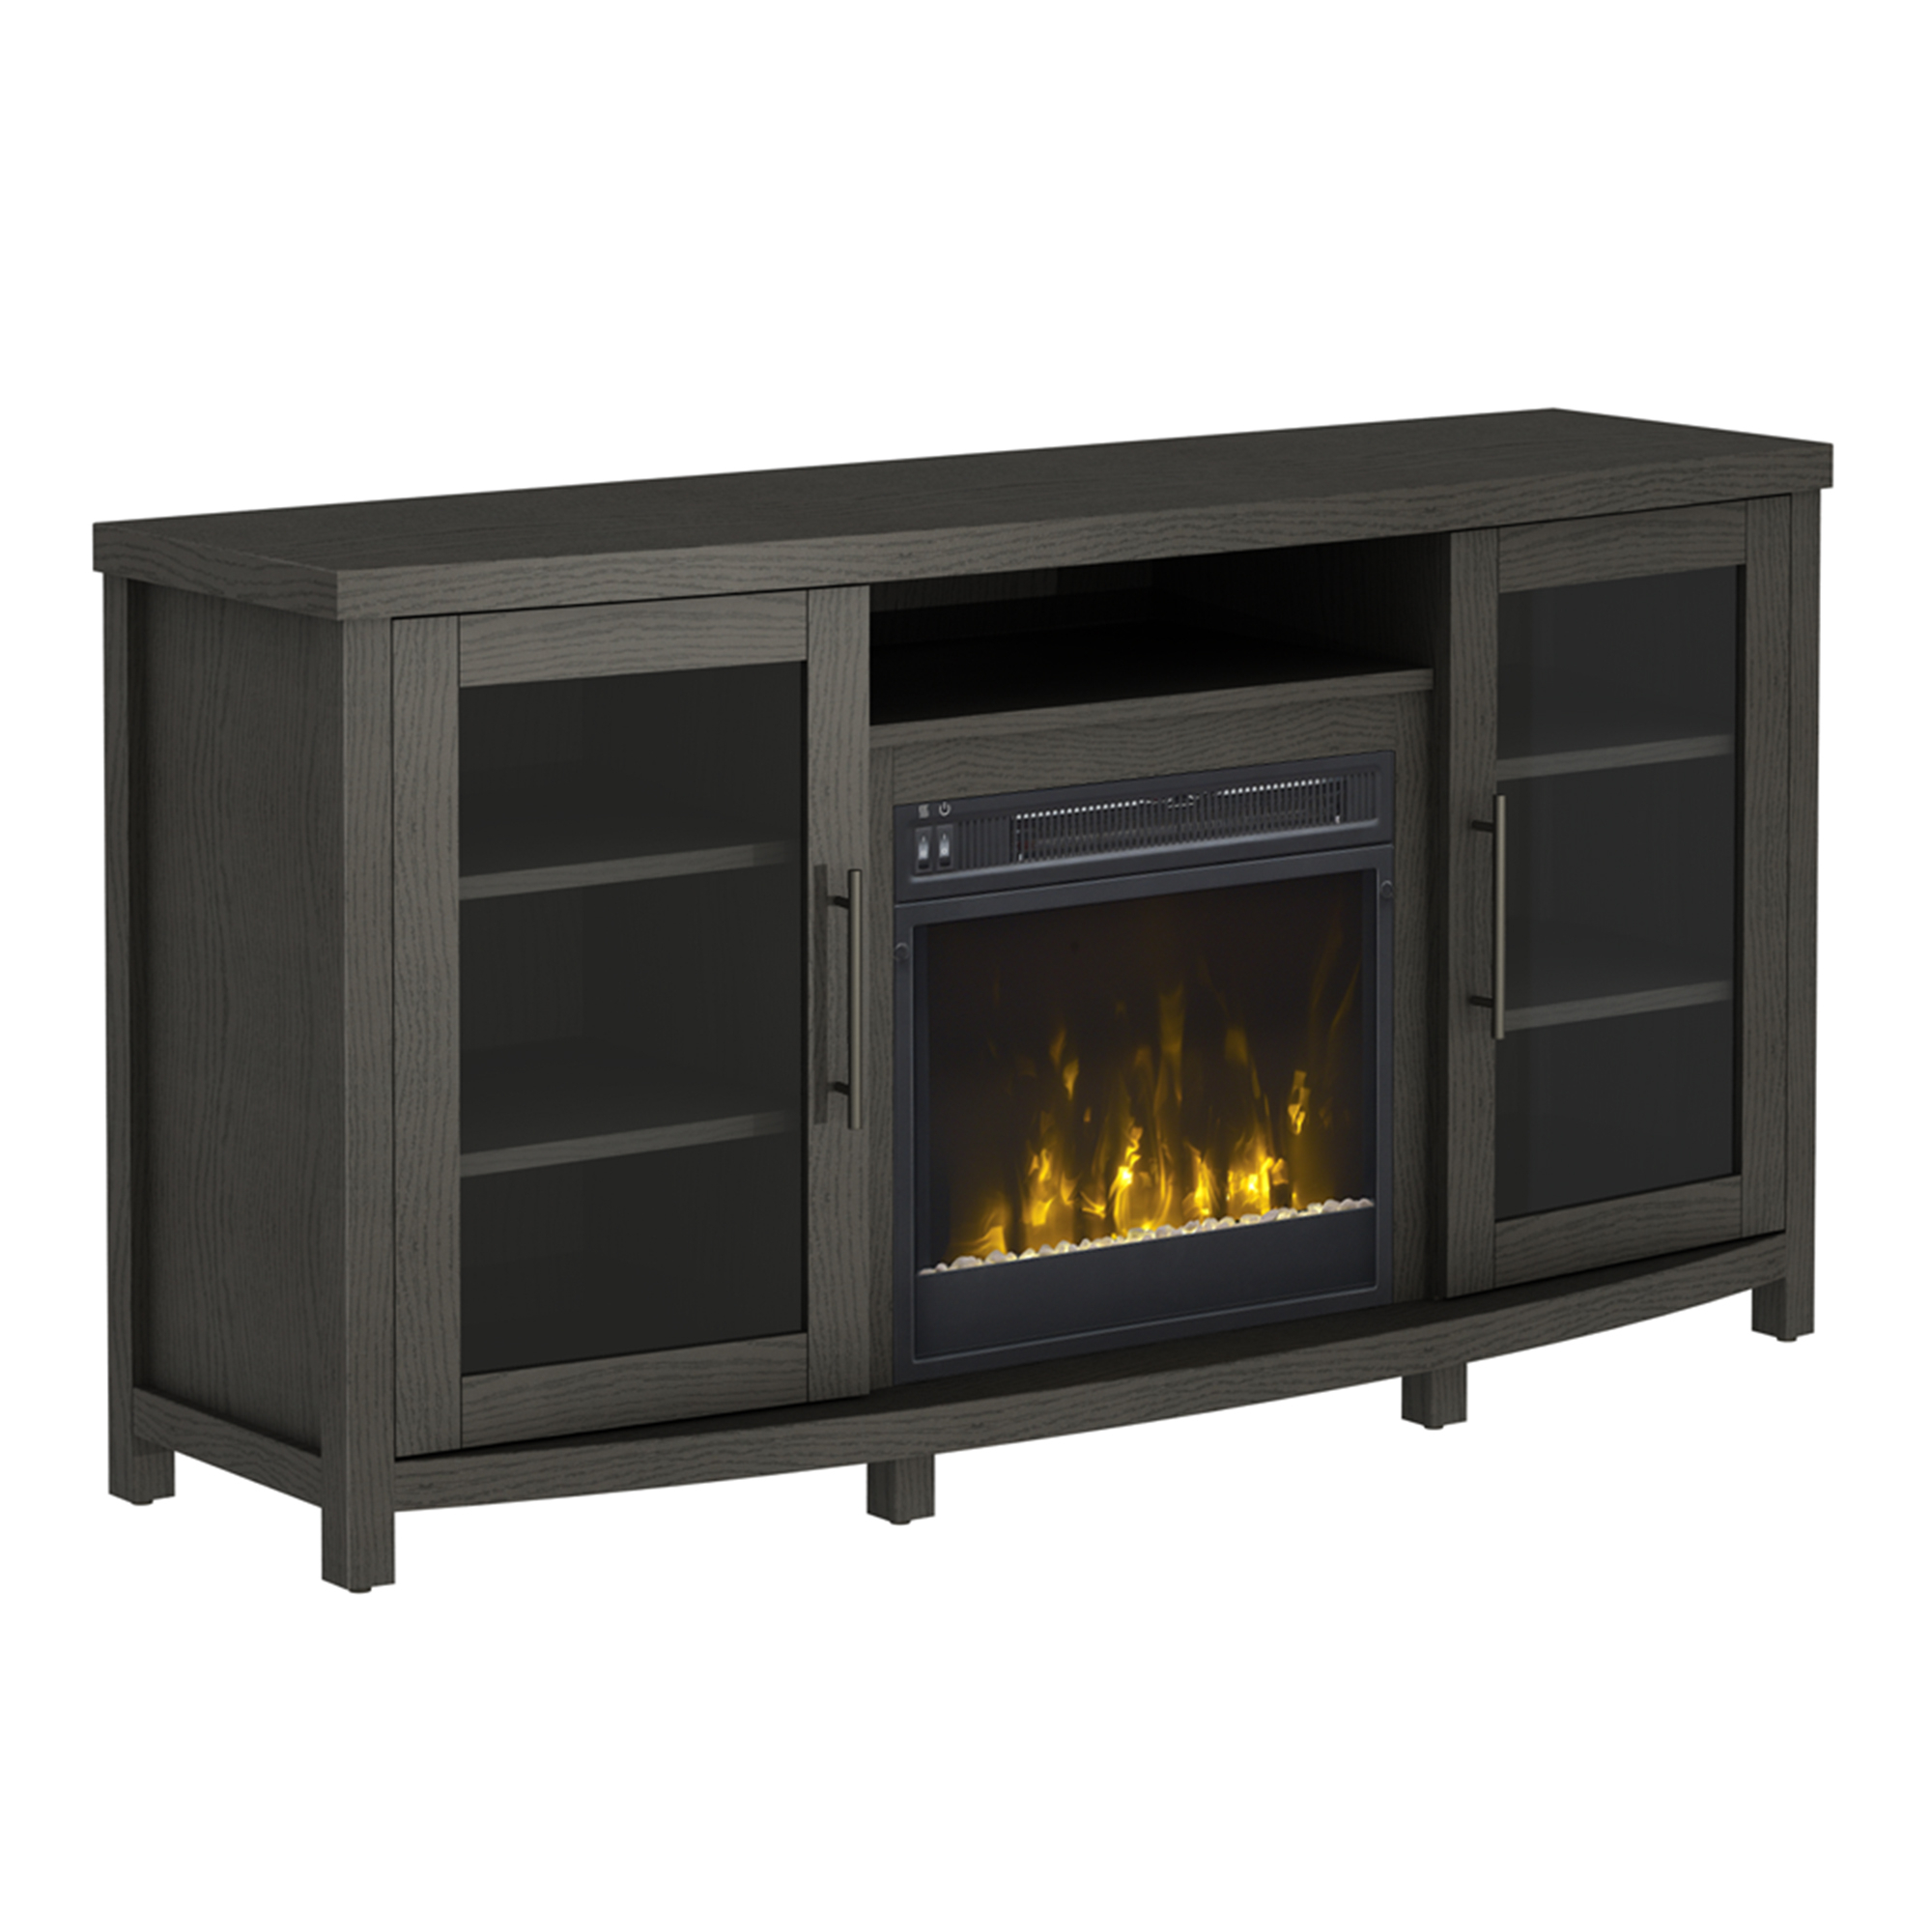 """Favorite Rossville Tv Stand For Tvs Up To 60 With Electric Fireplace In Adayah Tv Stands For Tvs Up To 60"""" (View 17 of 25)"""